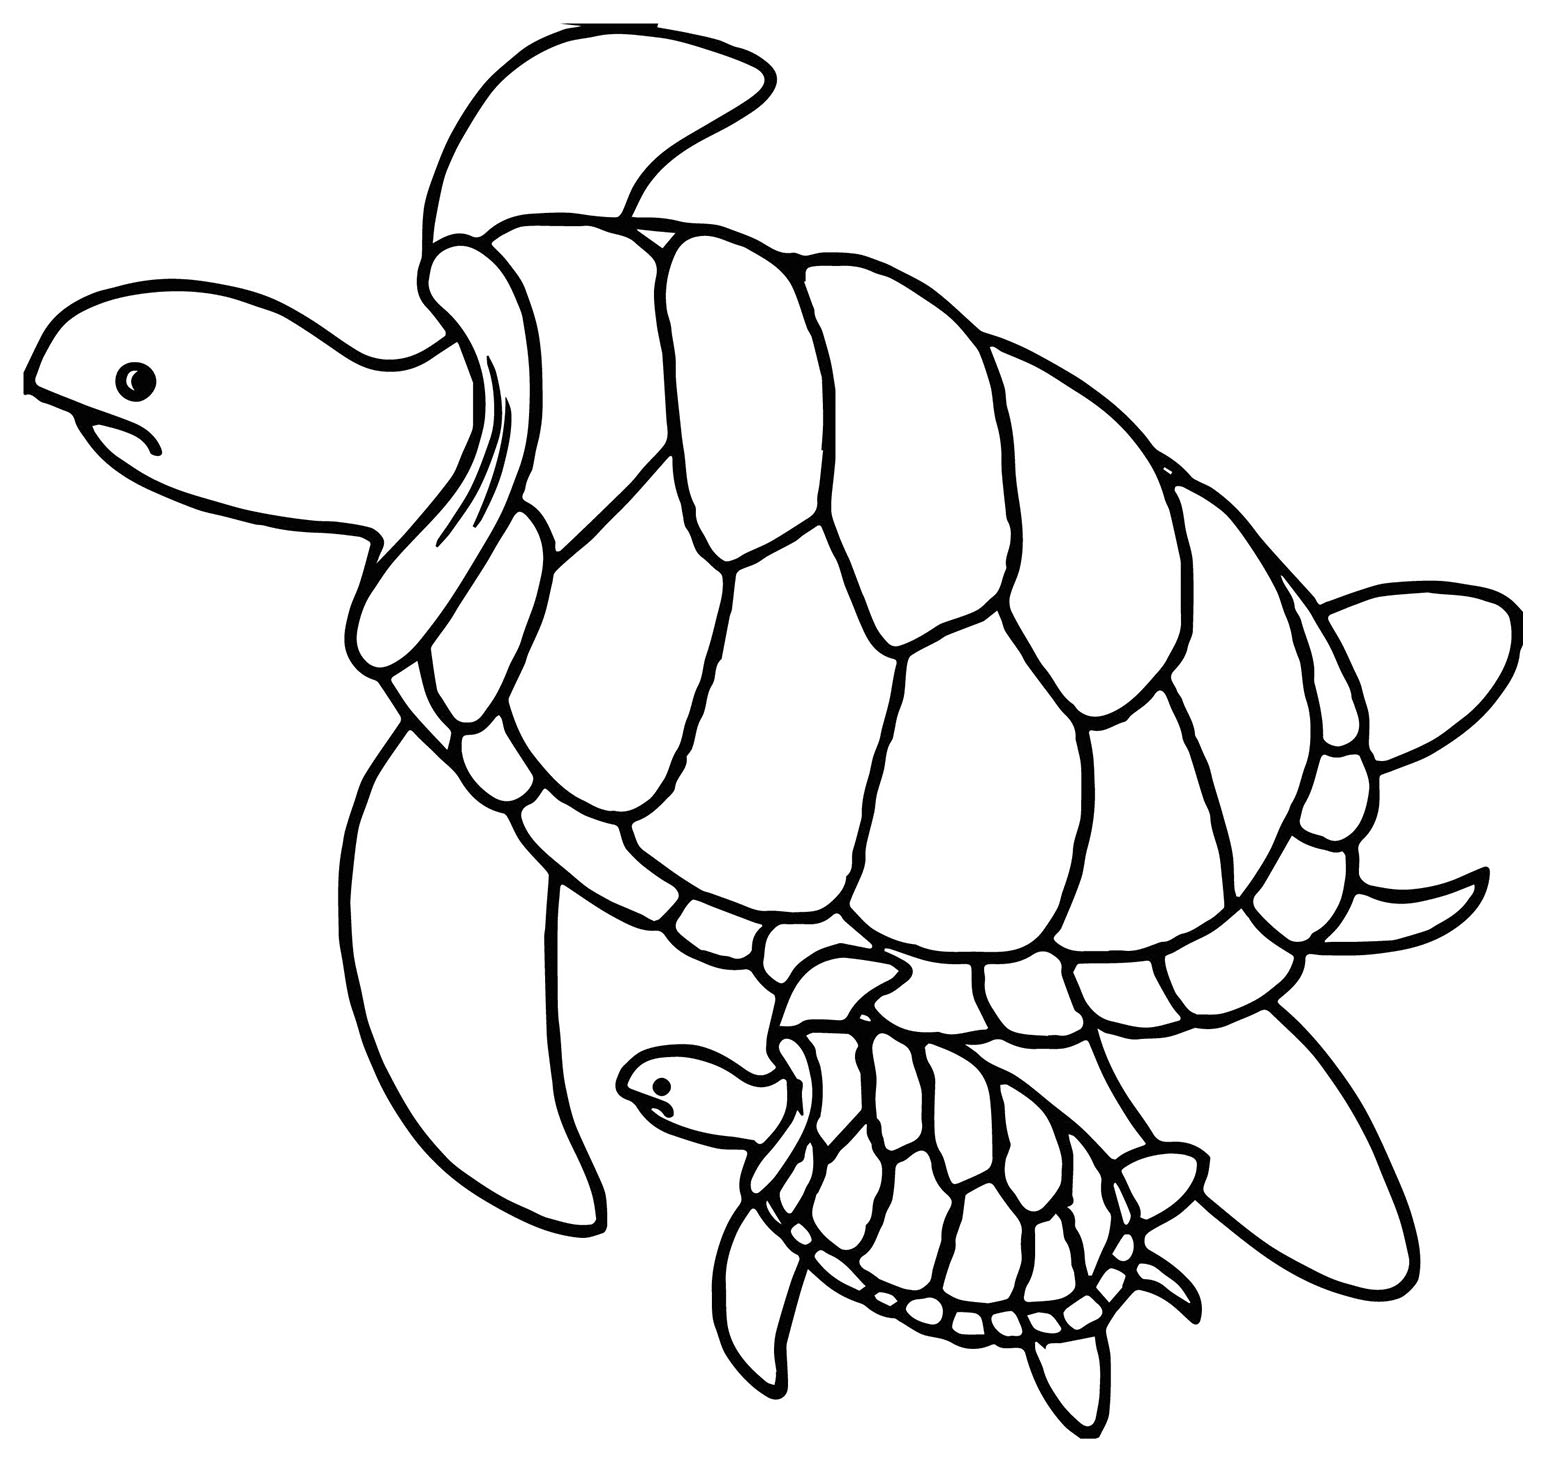 coloring turtle parking coloring animals turtle with images turtle coloring turtle coloring parking